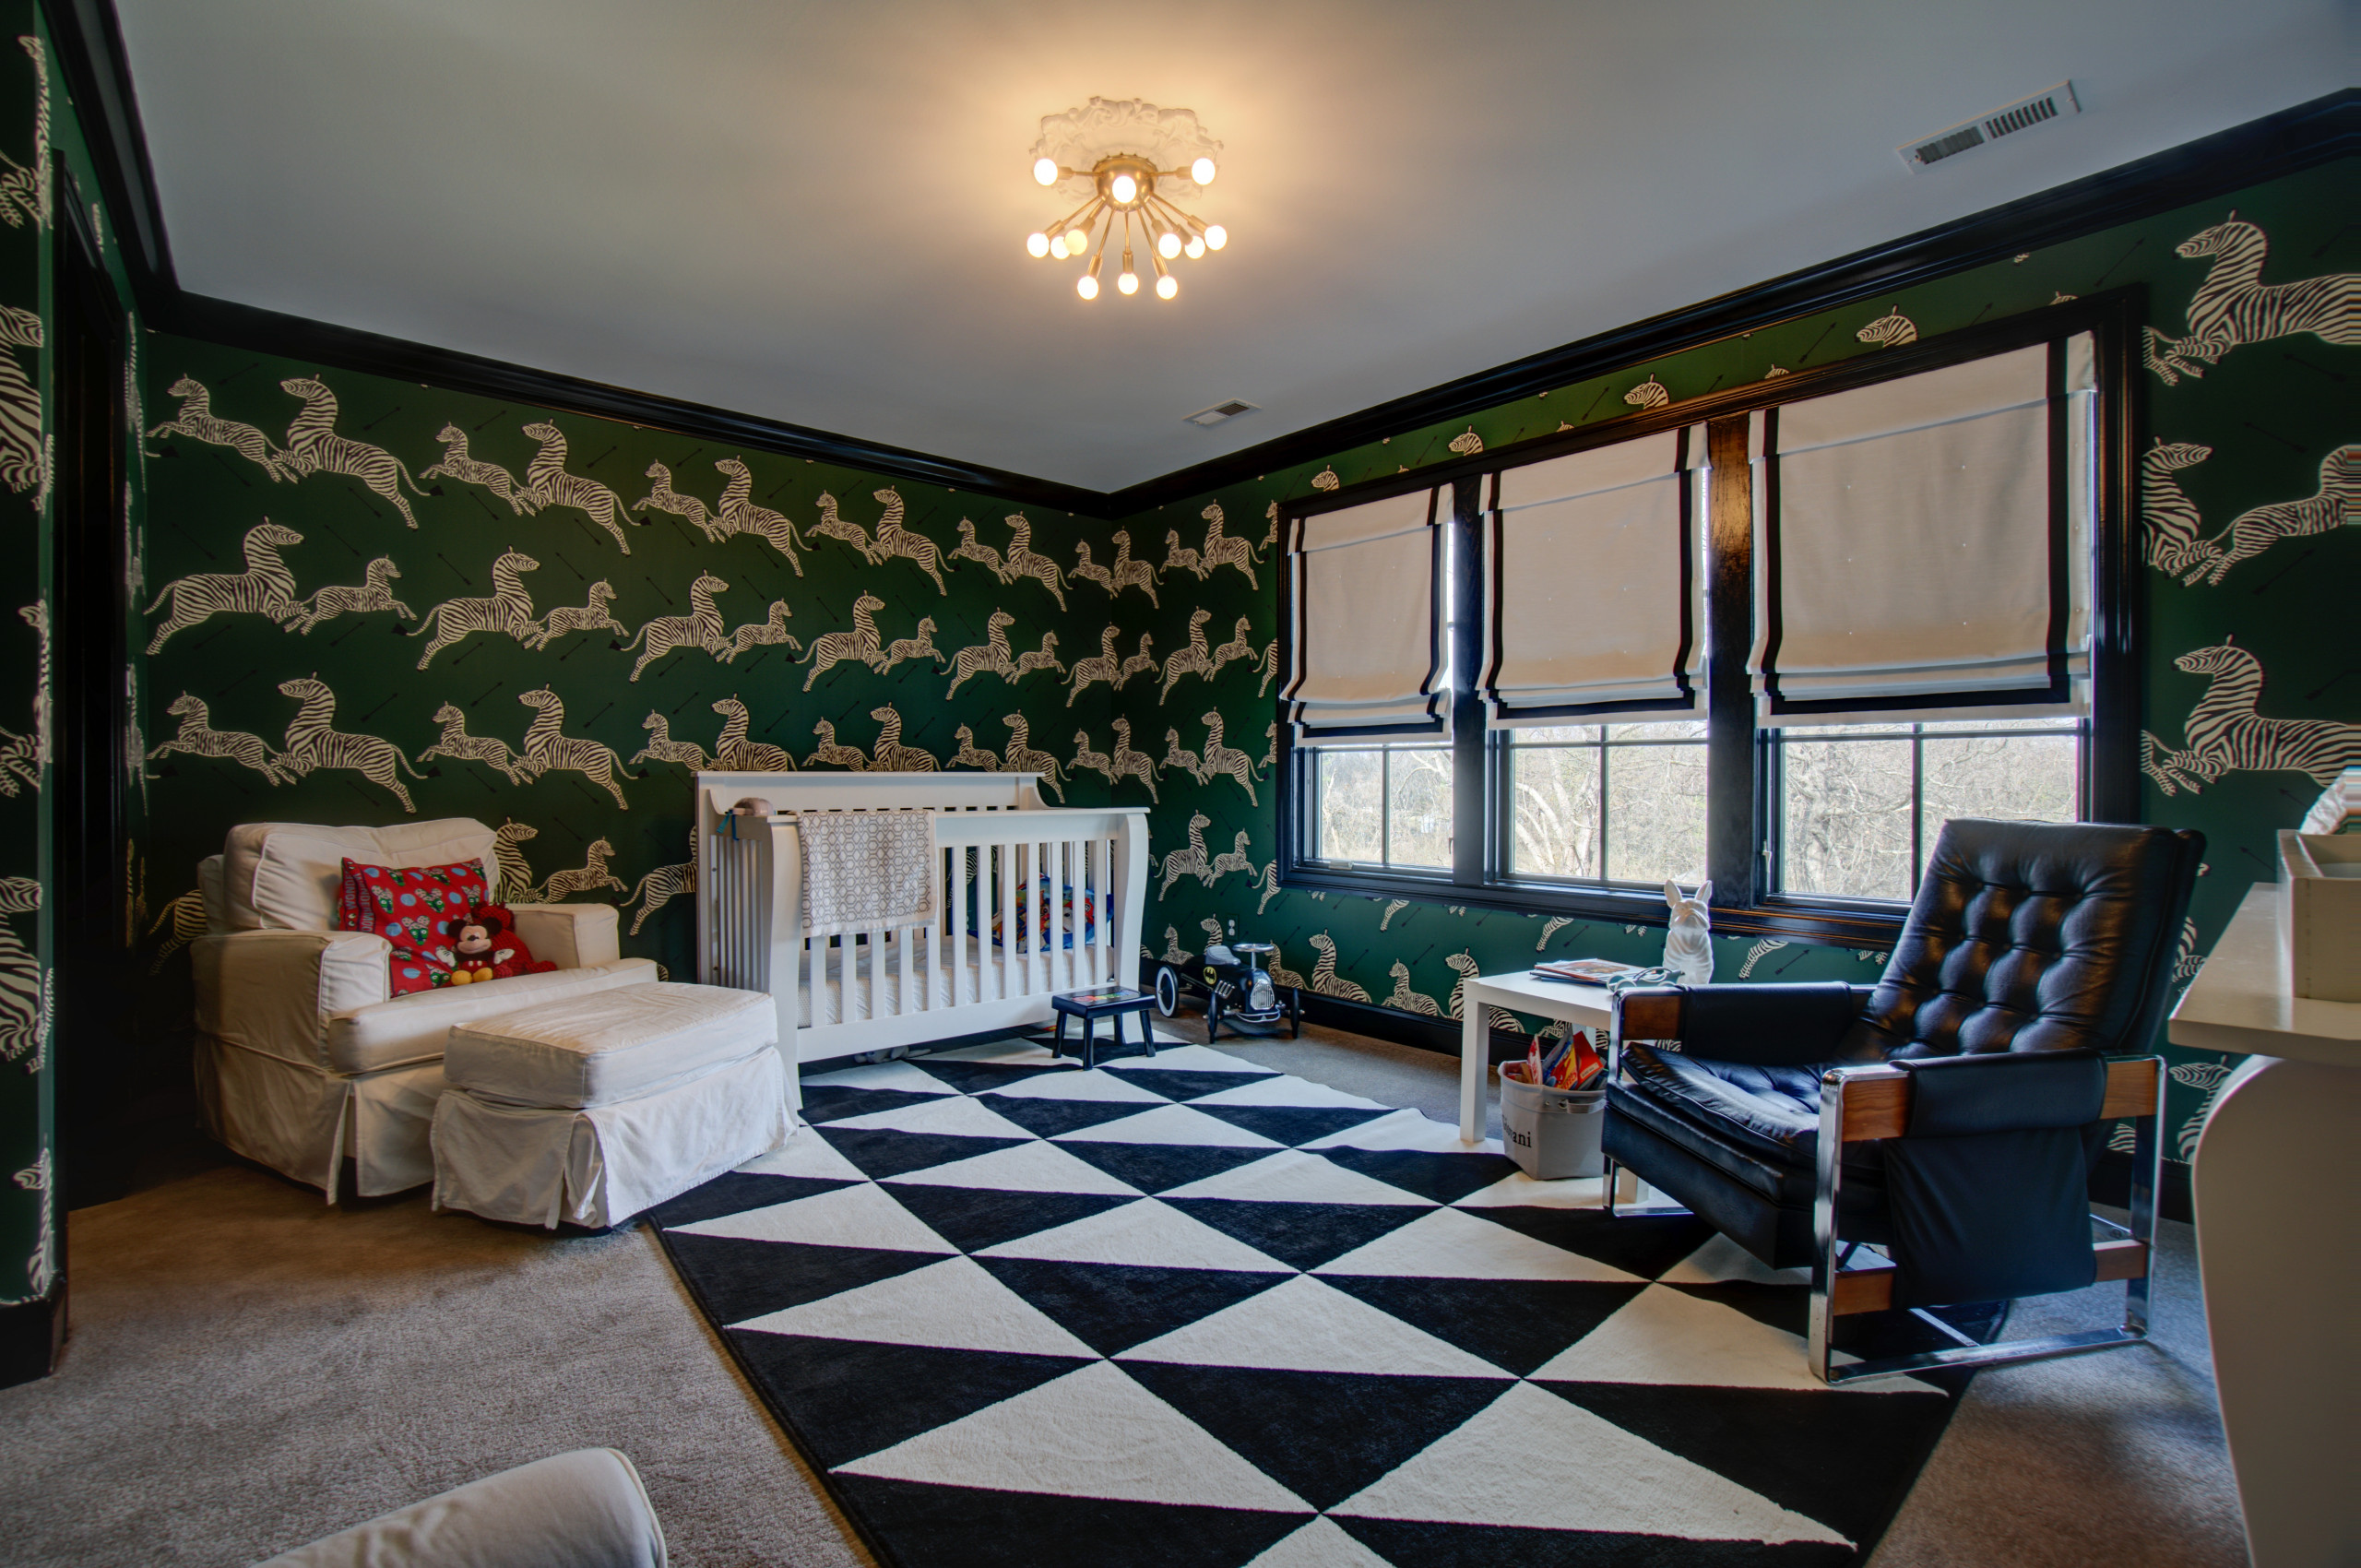 Gorgeous wallpaper in green with pattern that adds cheer to the lovely nursery